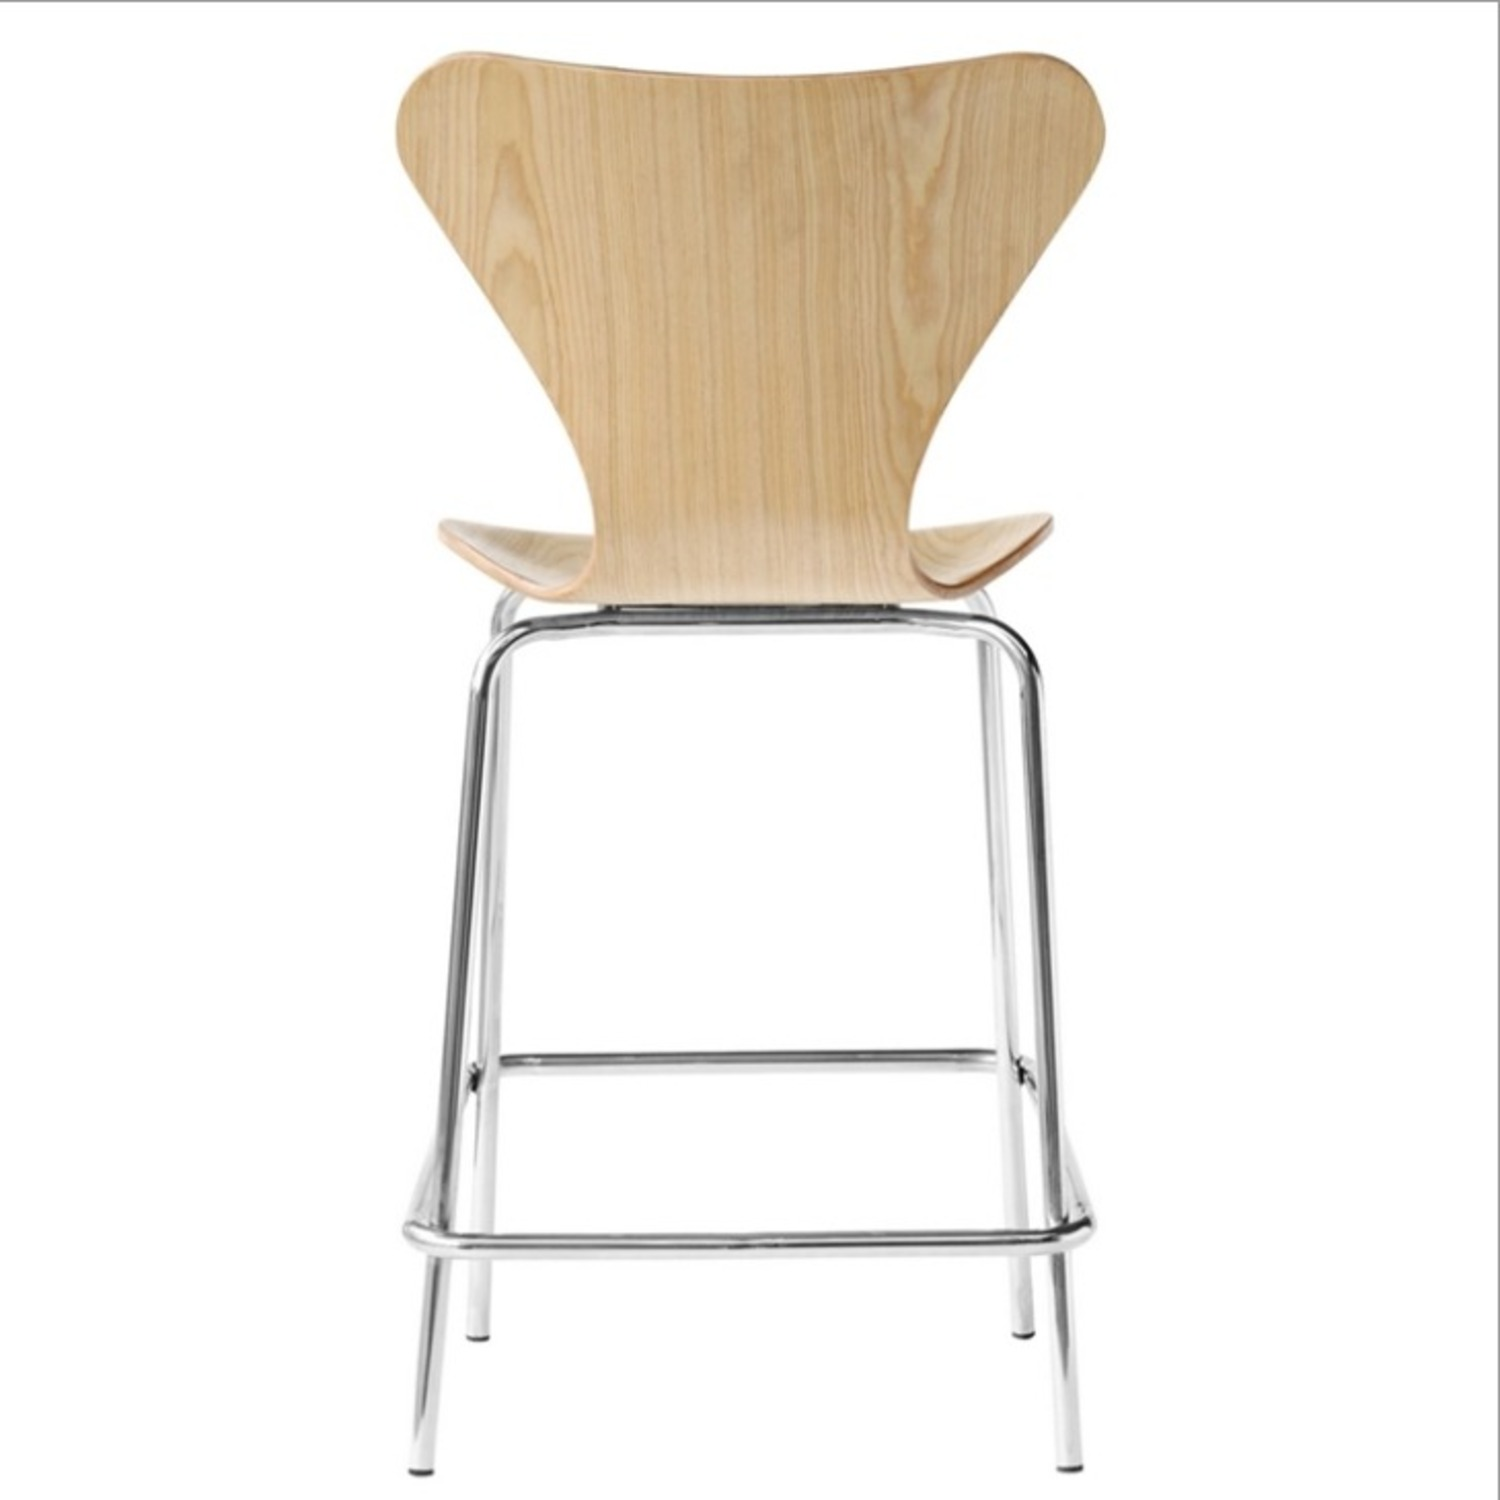 Modern Counter Stool Crafted In Natural Plywood - image-2